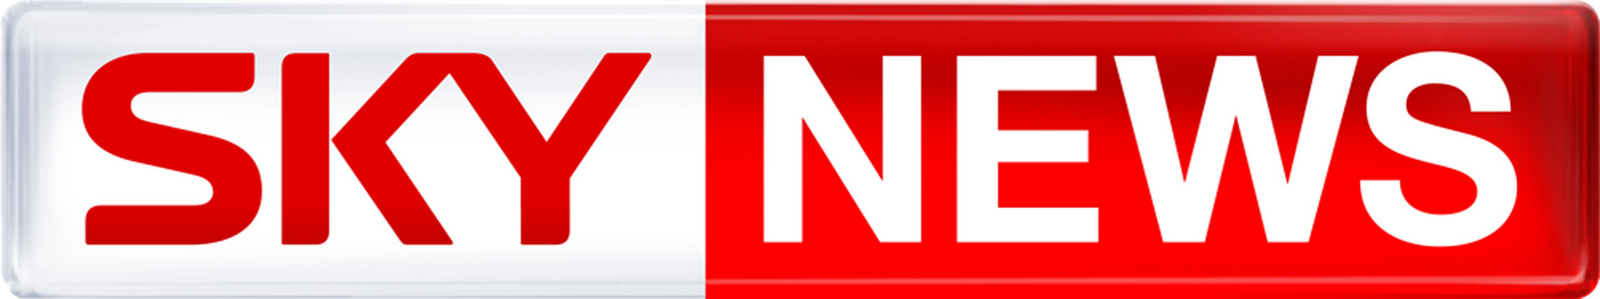 The logo for sky news is quite simple with red and white used cleverly ...